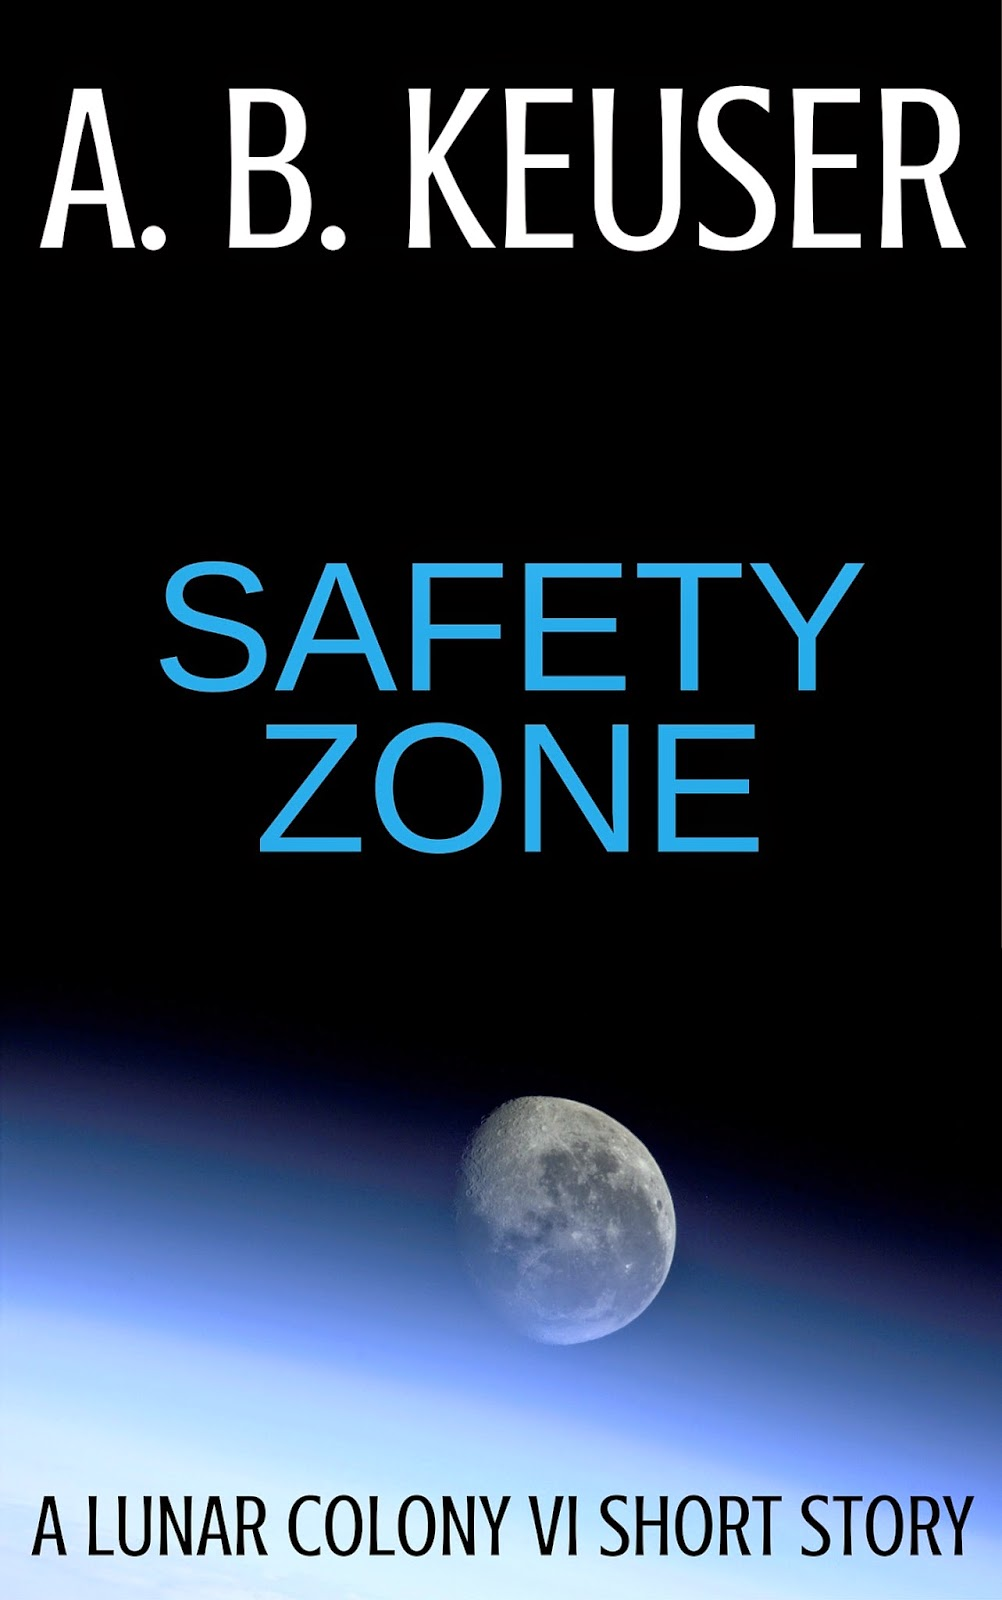 http://www.amazon.com/Safety-Zone-Lunar-Colony-Book-ebook/dp/B00S0H8OU8/ref=asap_bc?ie=UTF8